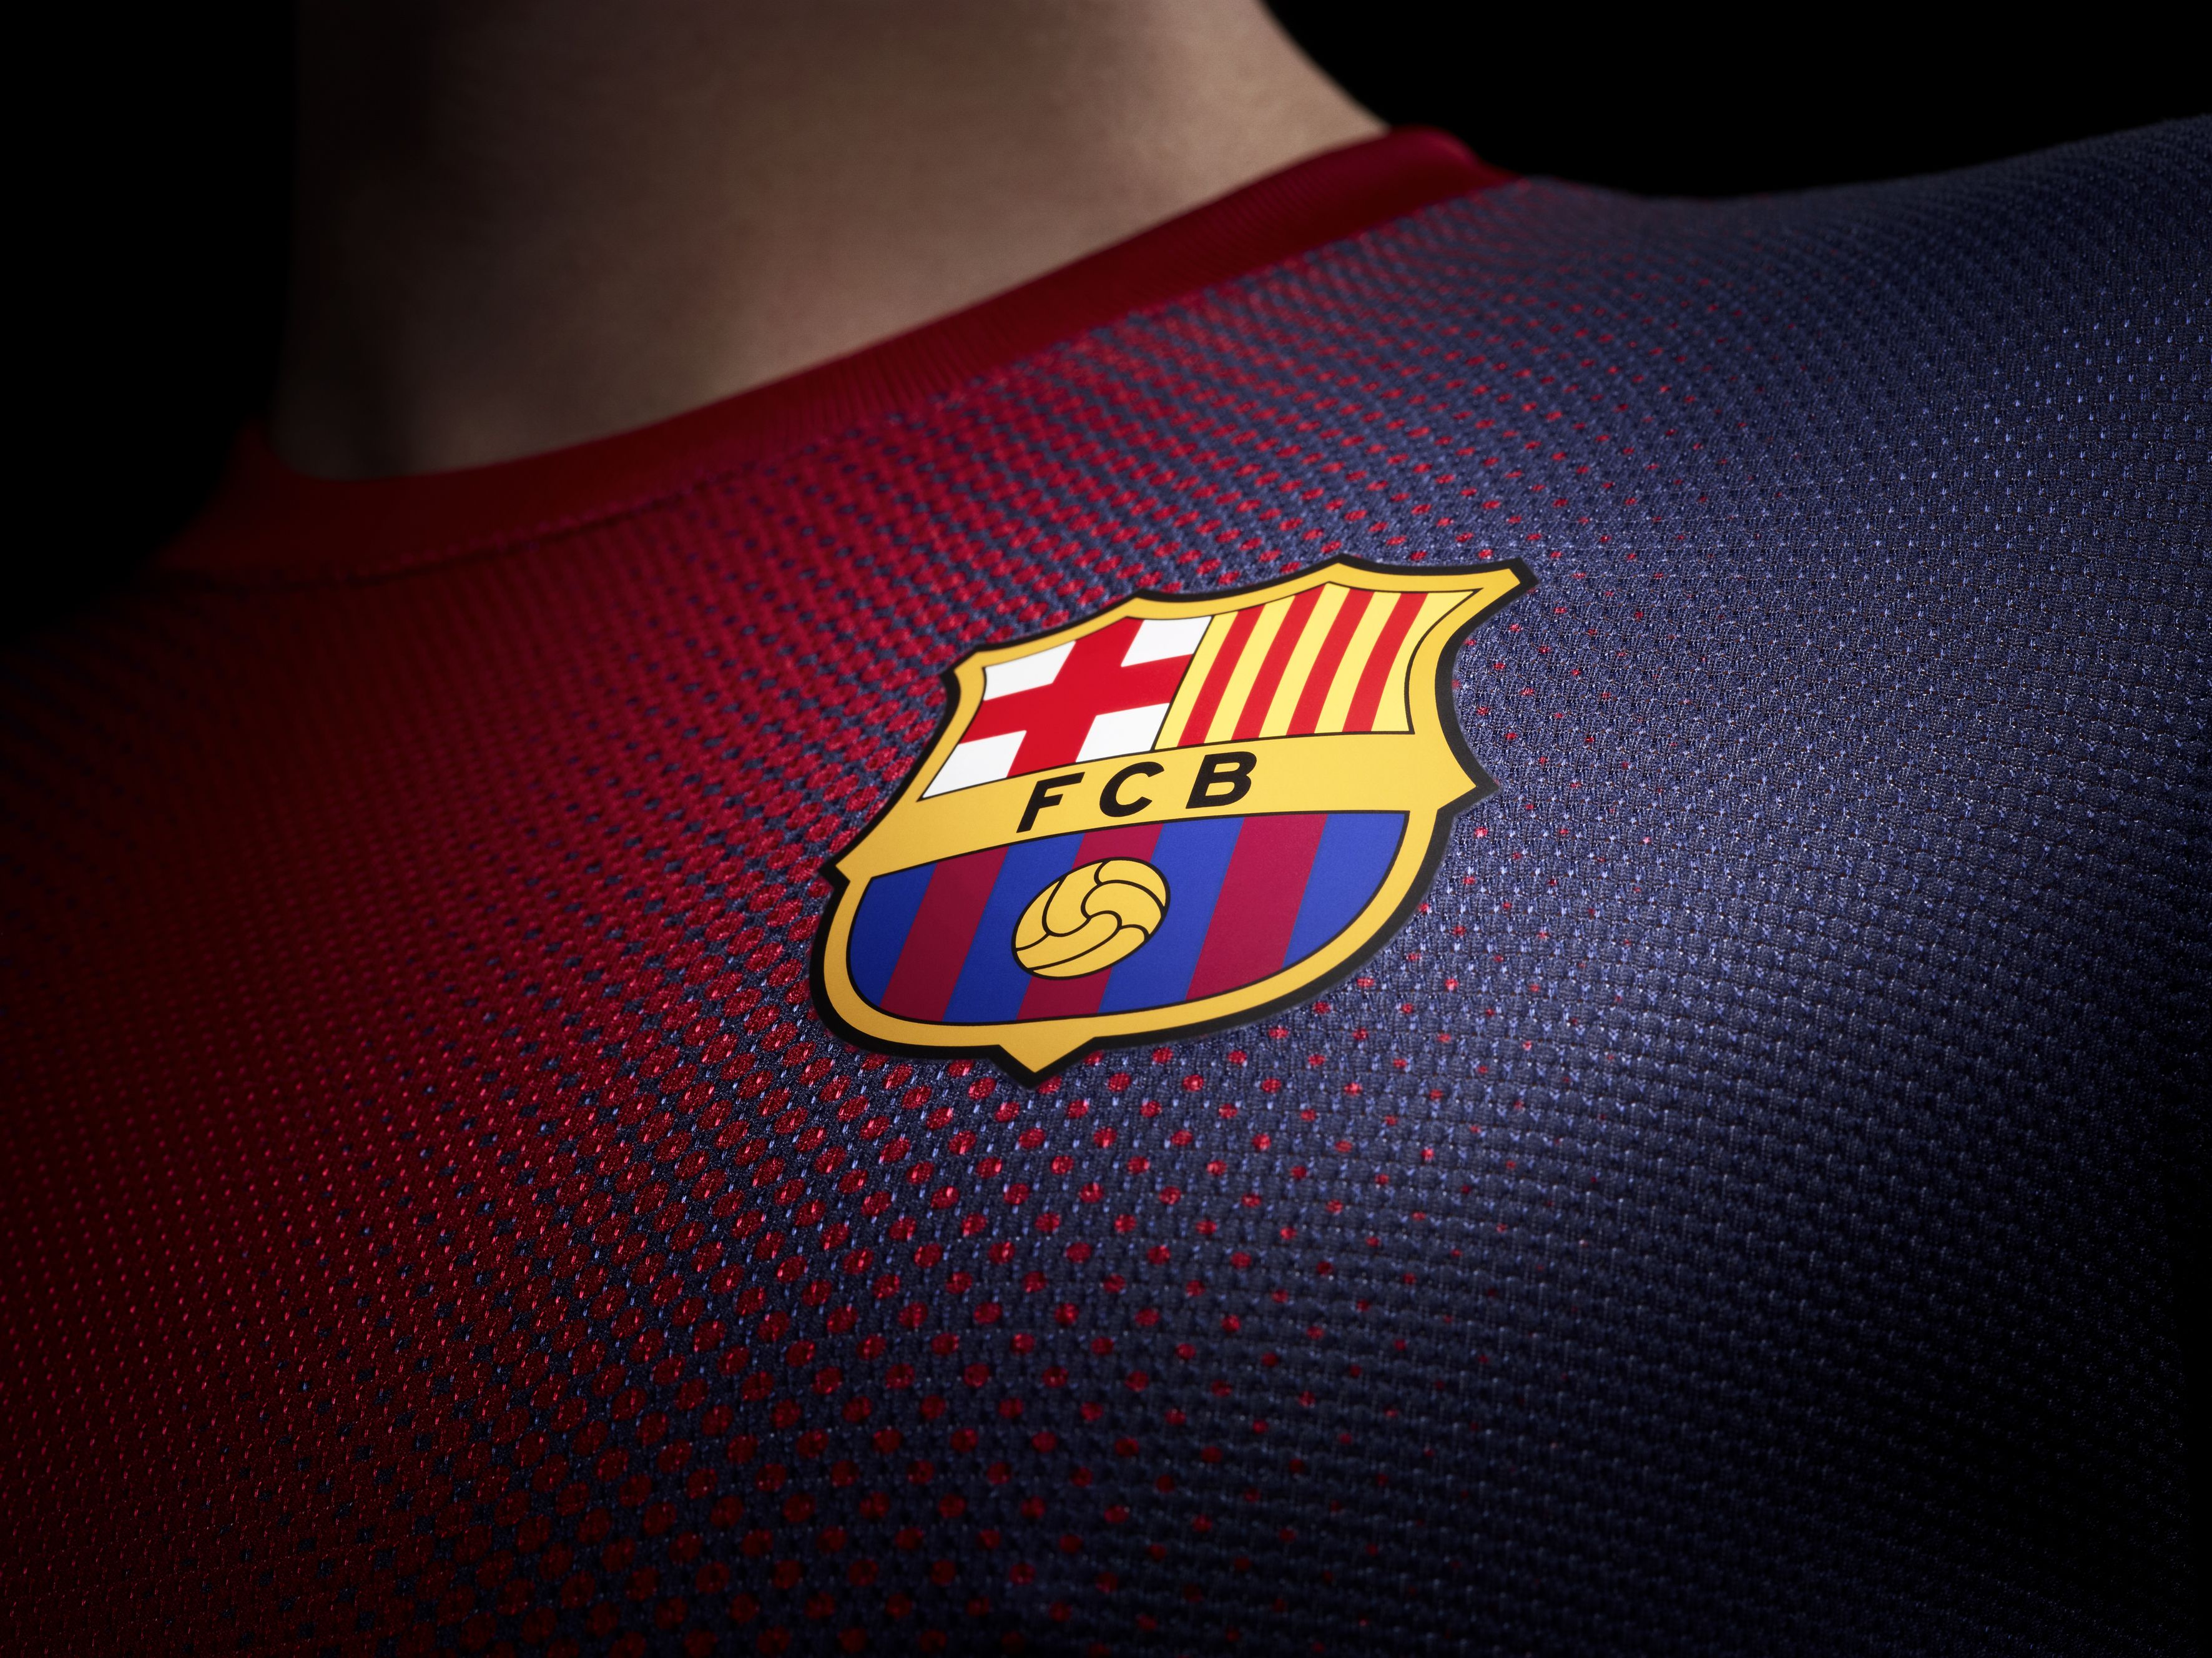 football, FC Barcelona, club, new form, wallpapers , Pc backgrounds, free photos - HD wallpaper desktop backgrounds